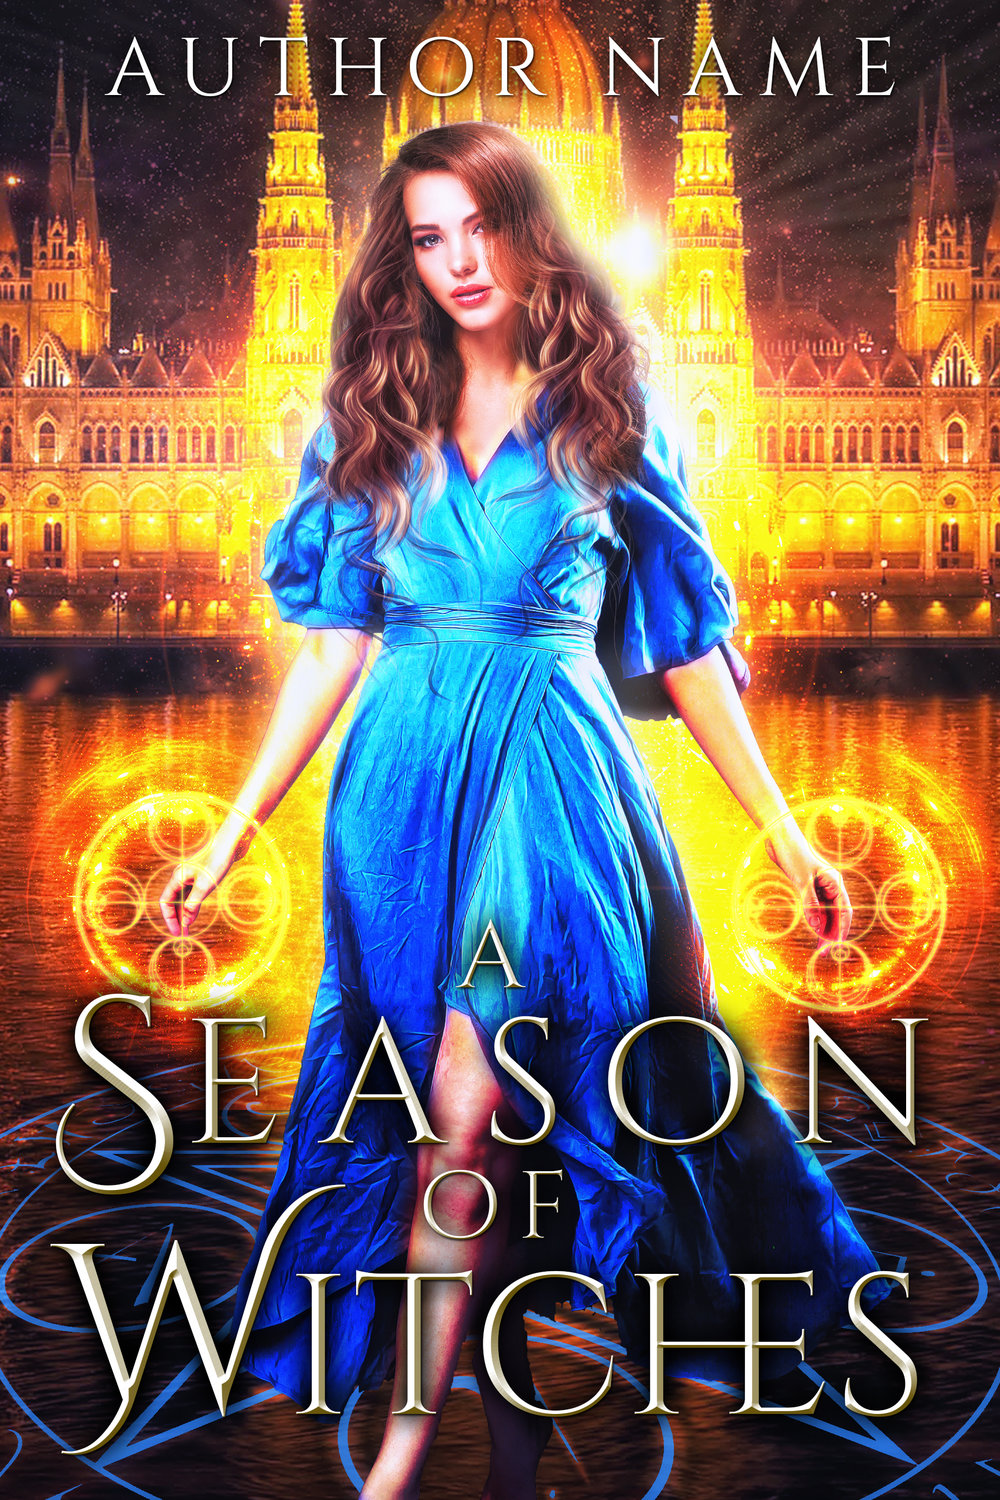 $150 - A Season of Witches